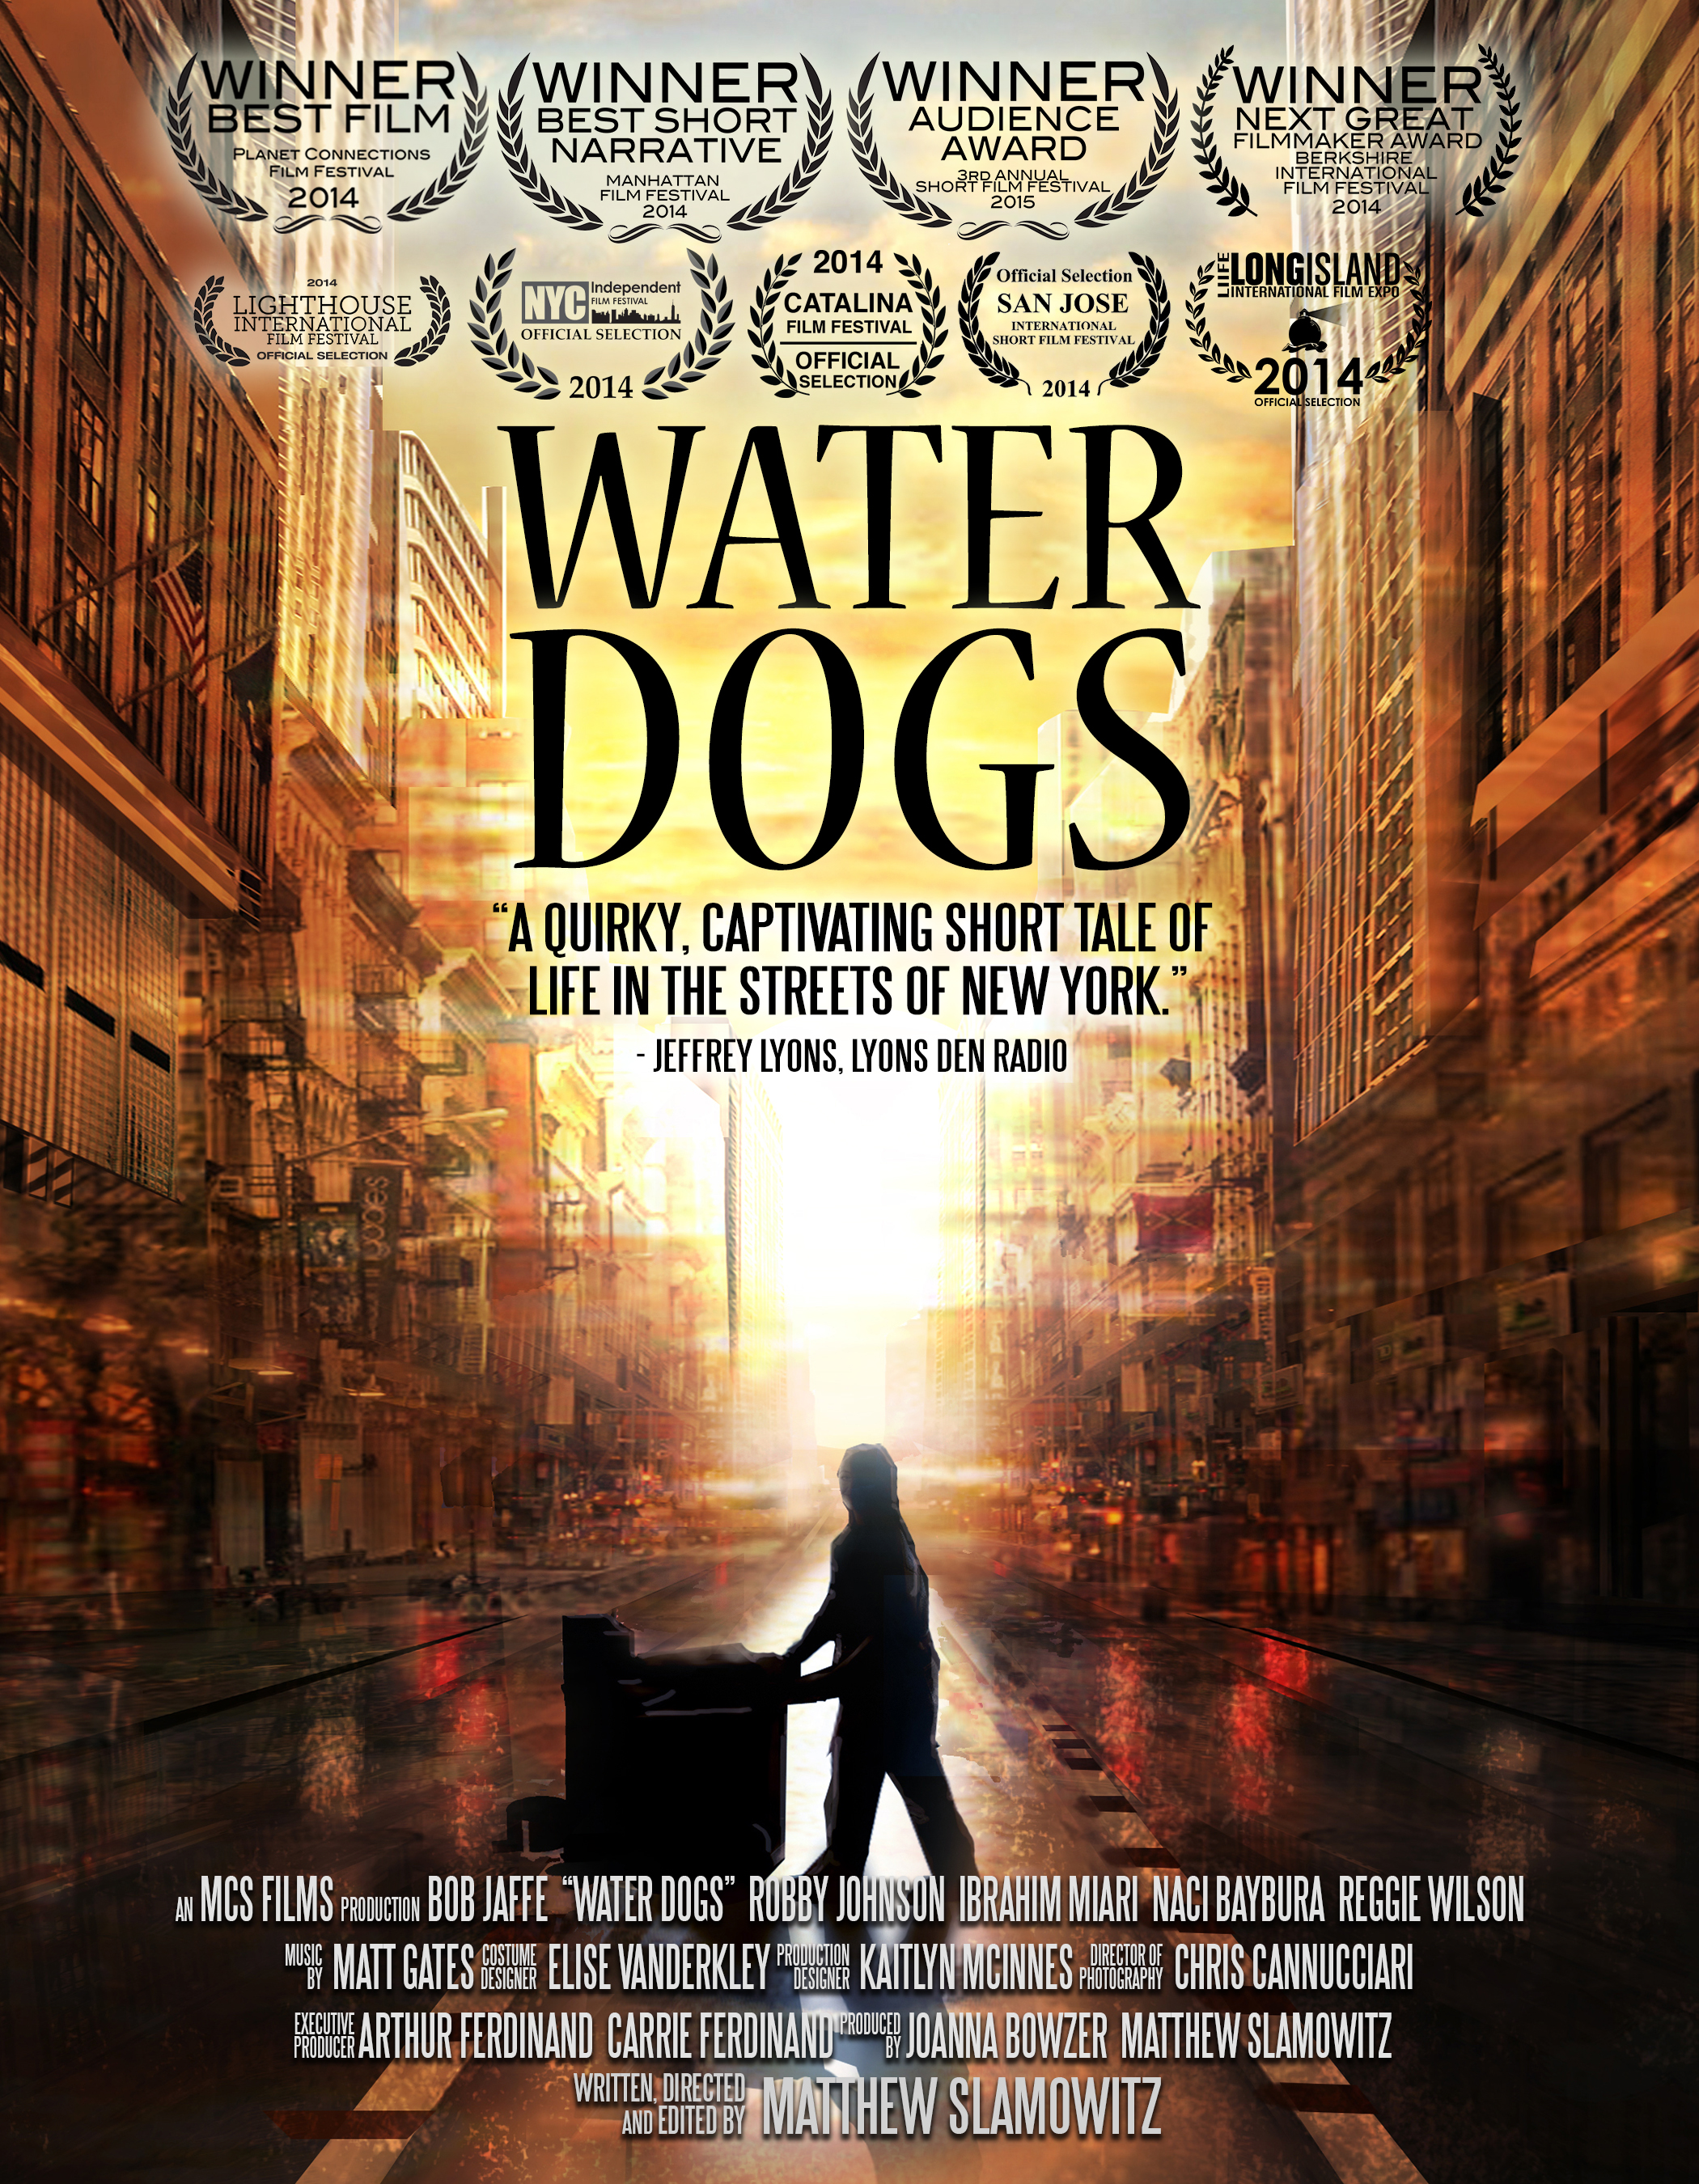 Water Dogs Poster_FINAL.jpg